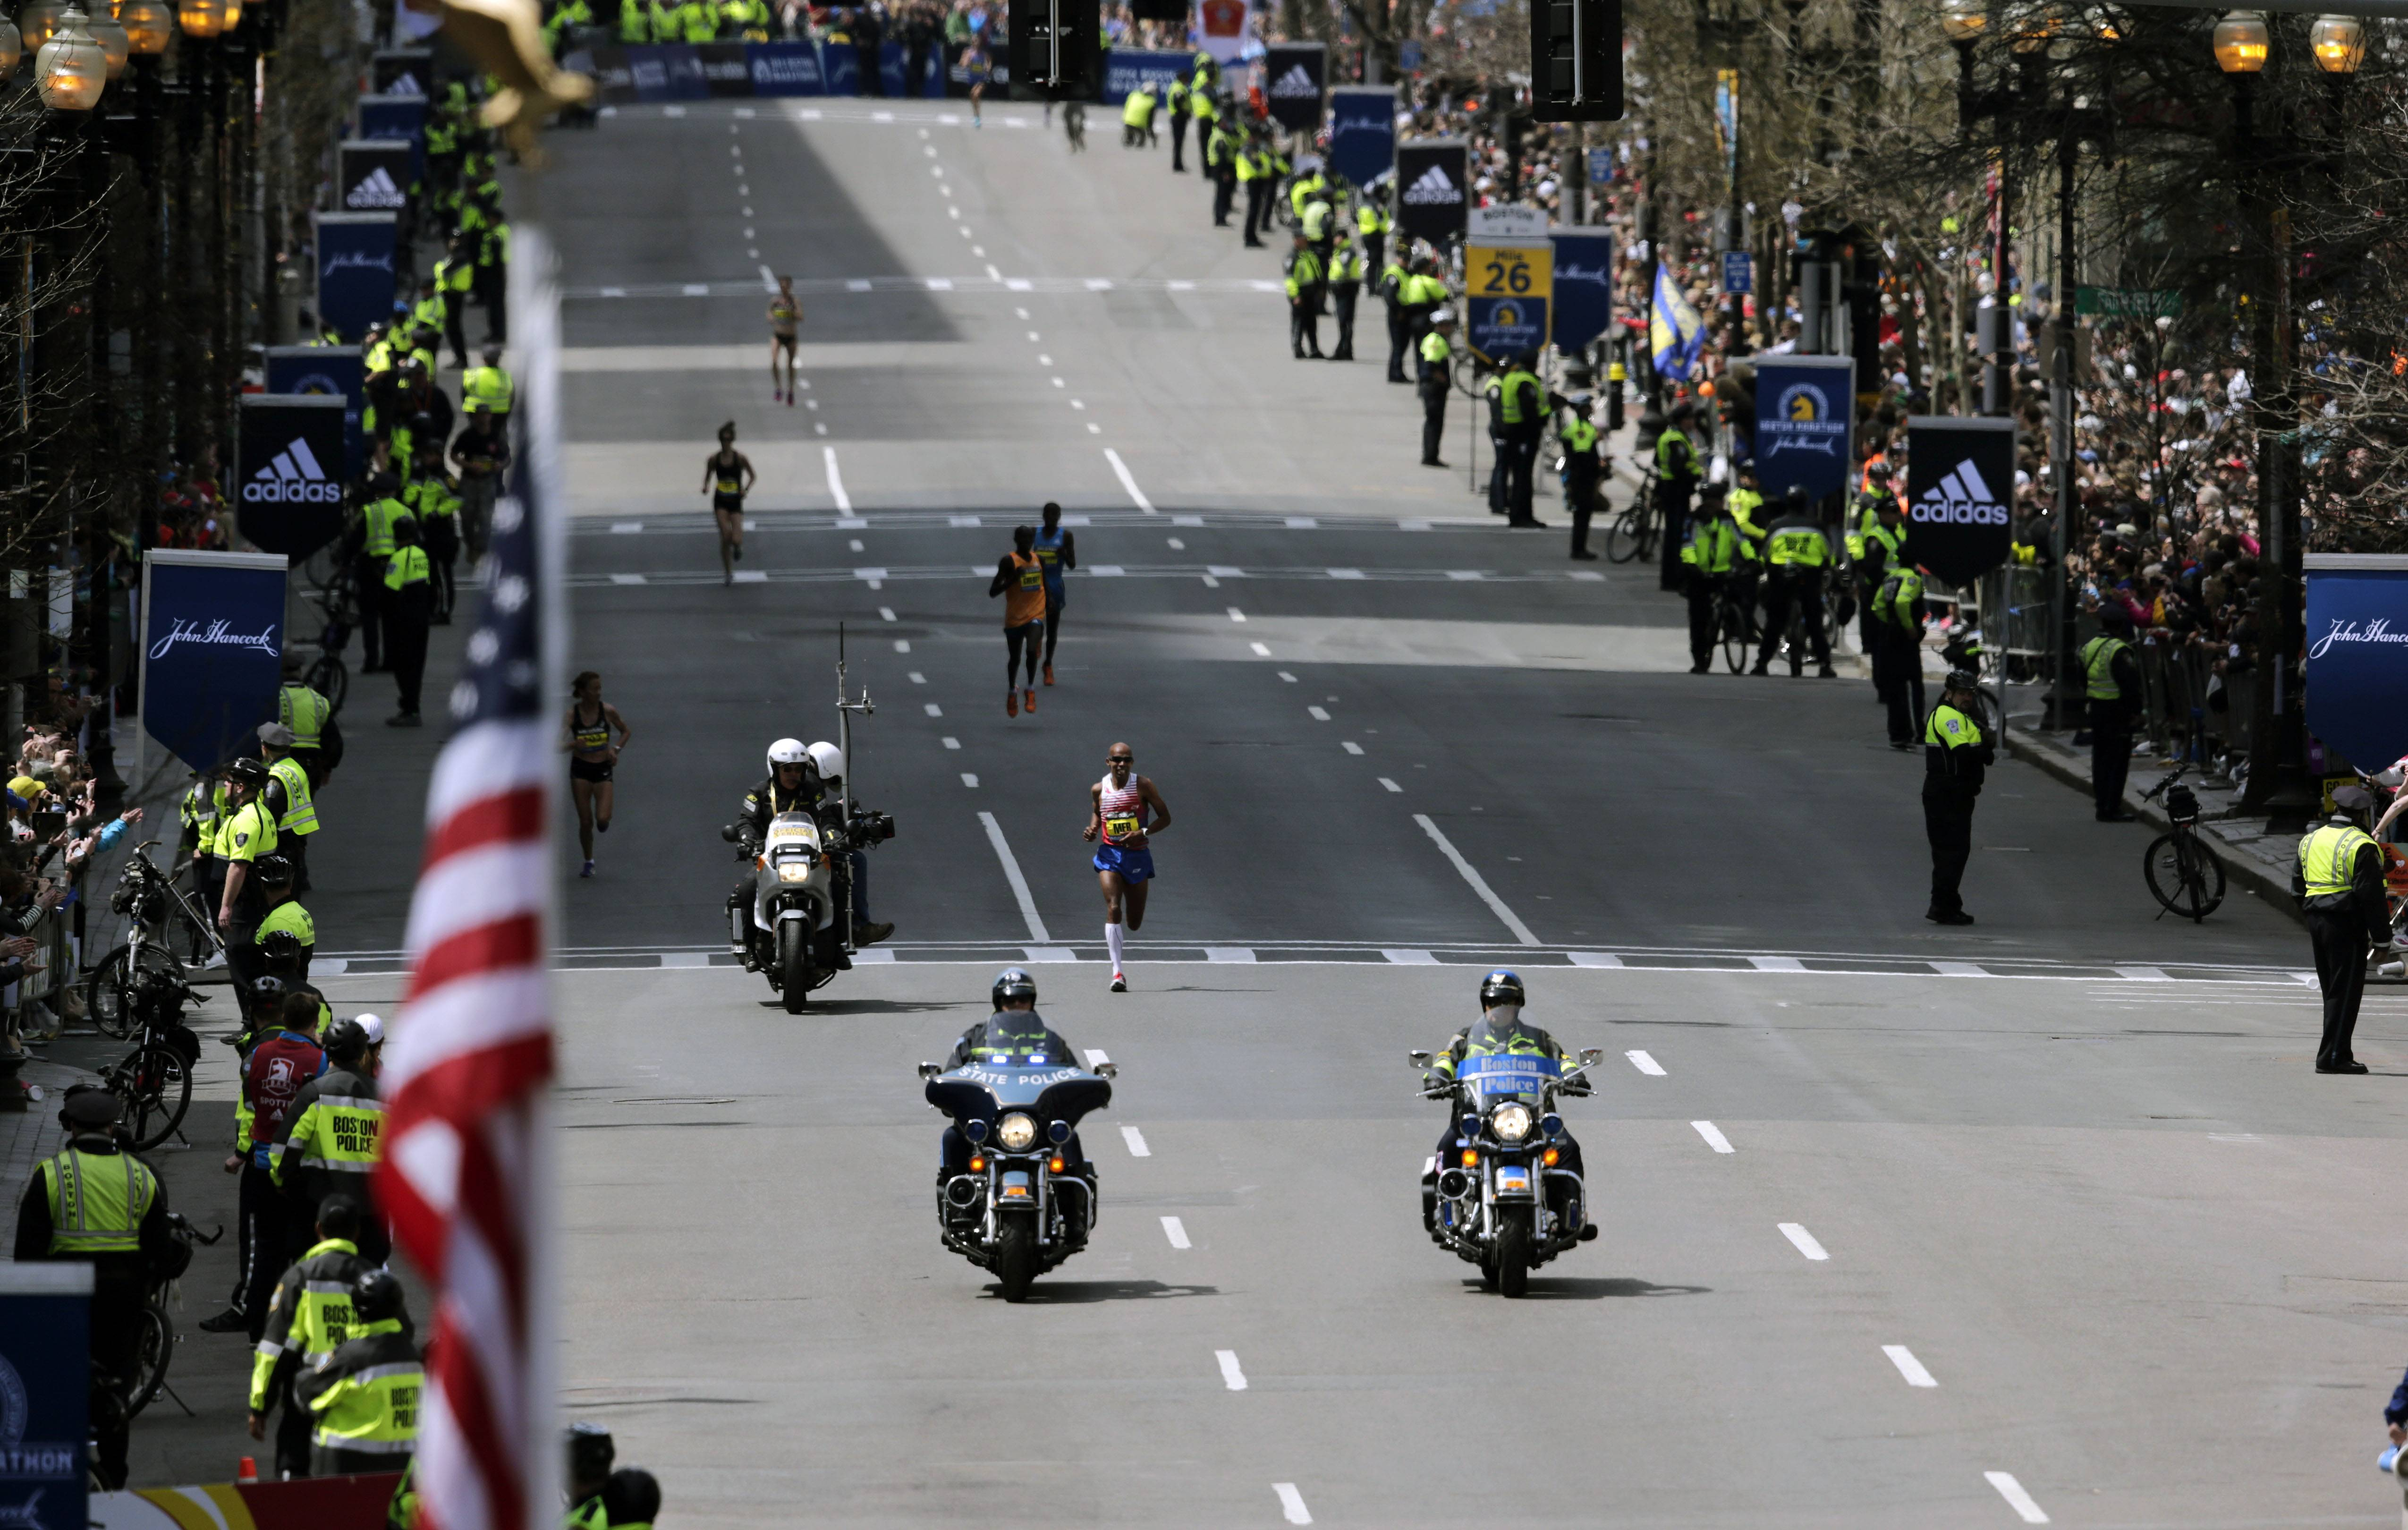 Meb Keflezighi, of San Diego, Calif., heads toward the finish line to win the 118th Boston Marathon Monday, April 21, 2014 in Boston.